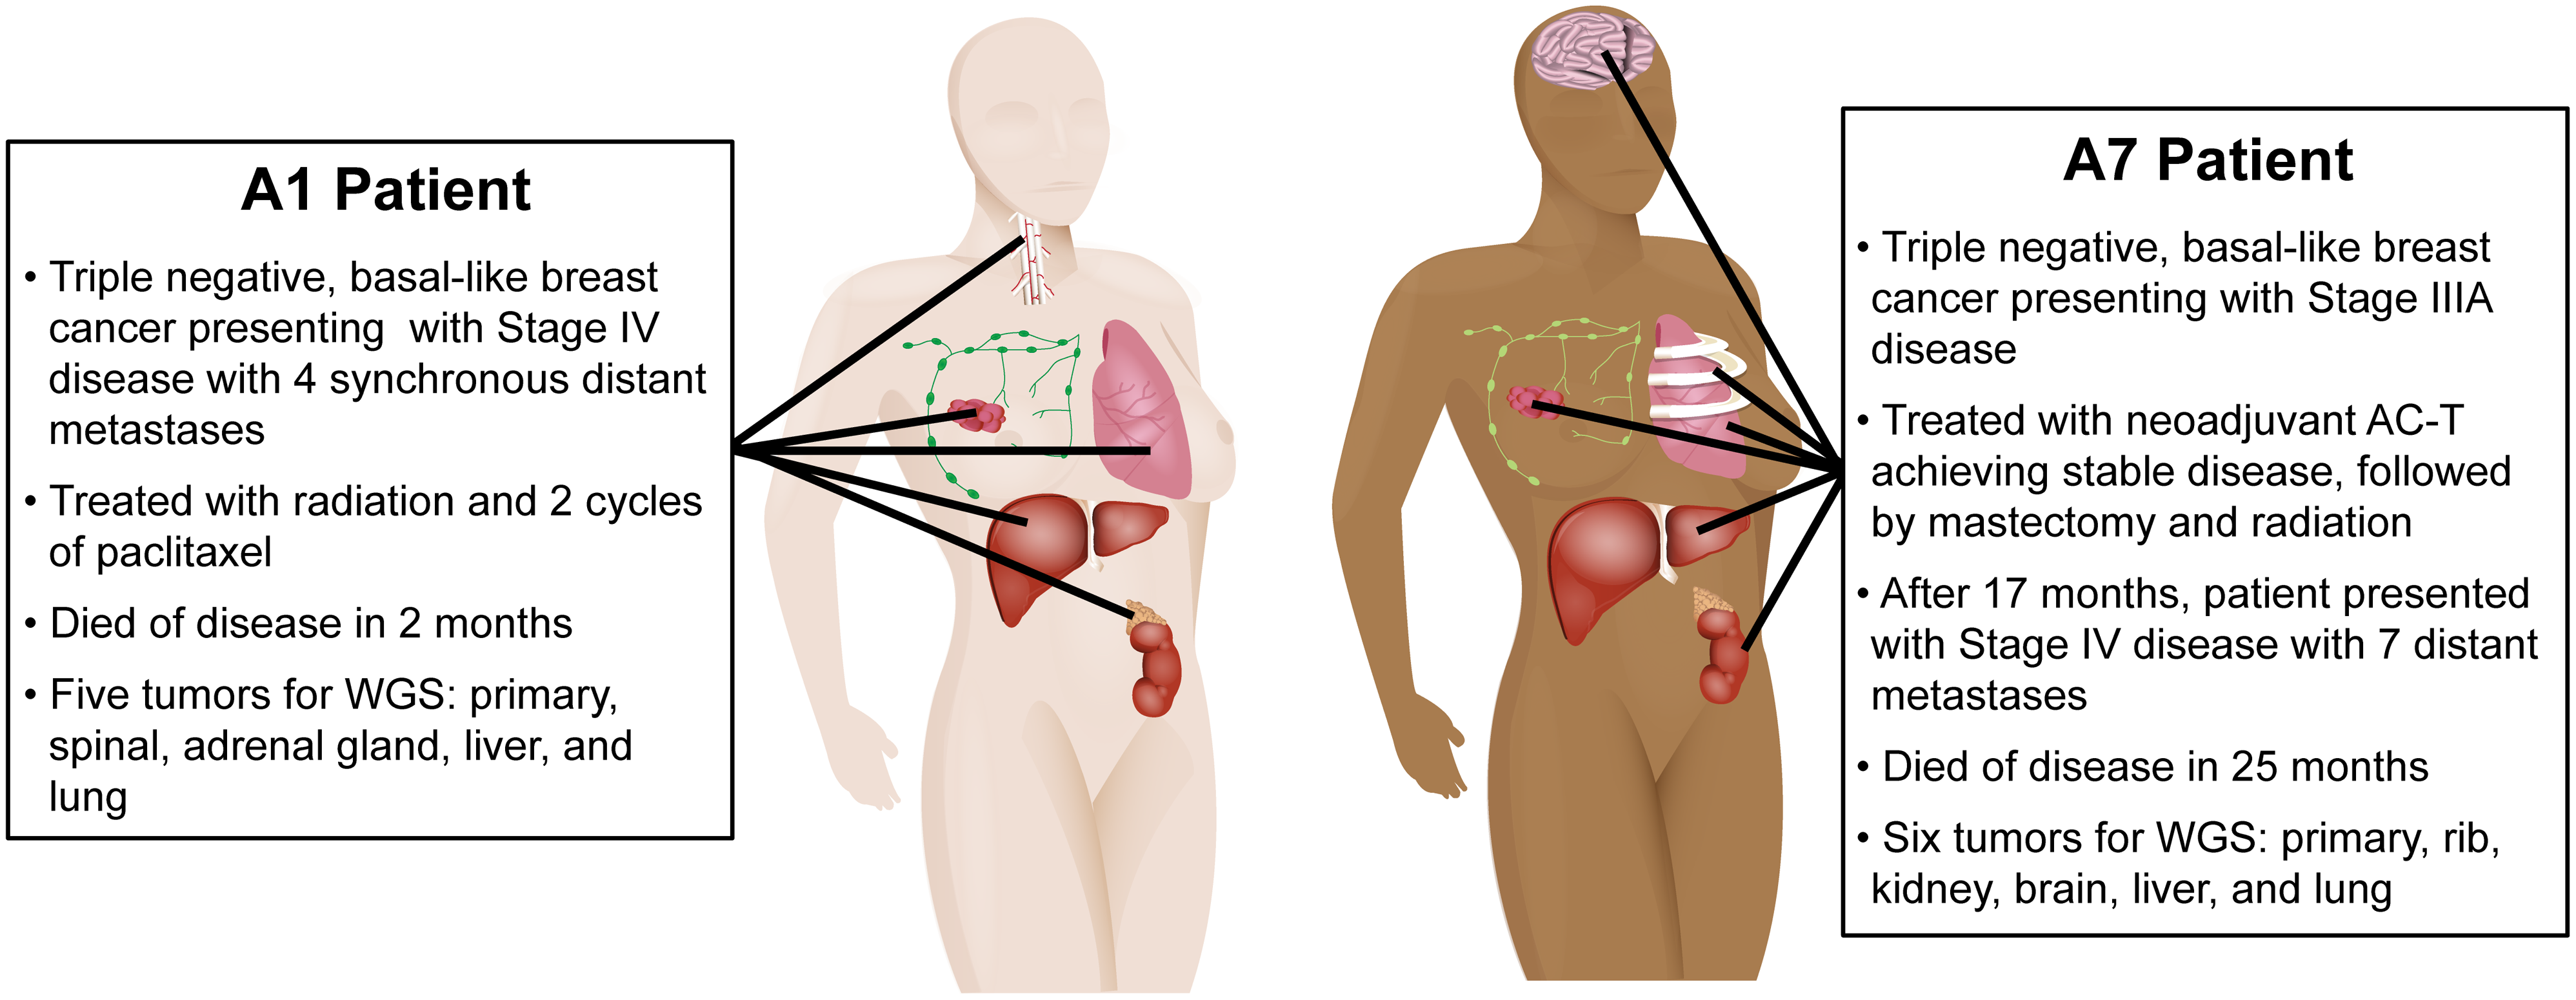 Clinical history and distribution of metastases from patients A1 and A7, who both had clinically triple-negative and basal-like breast cancer.